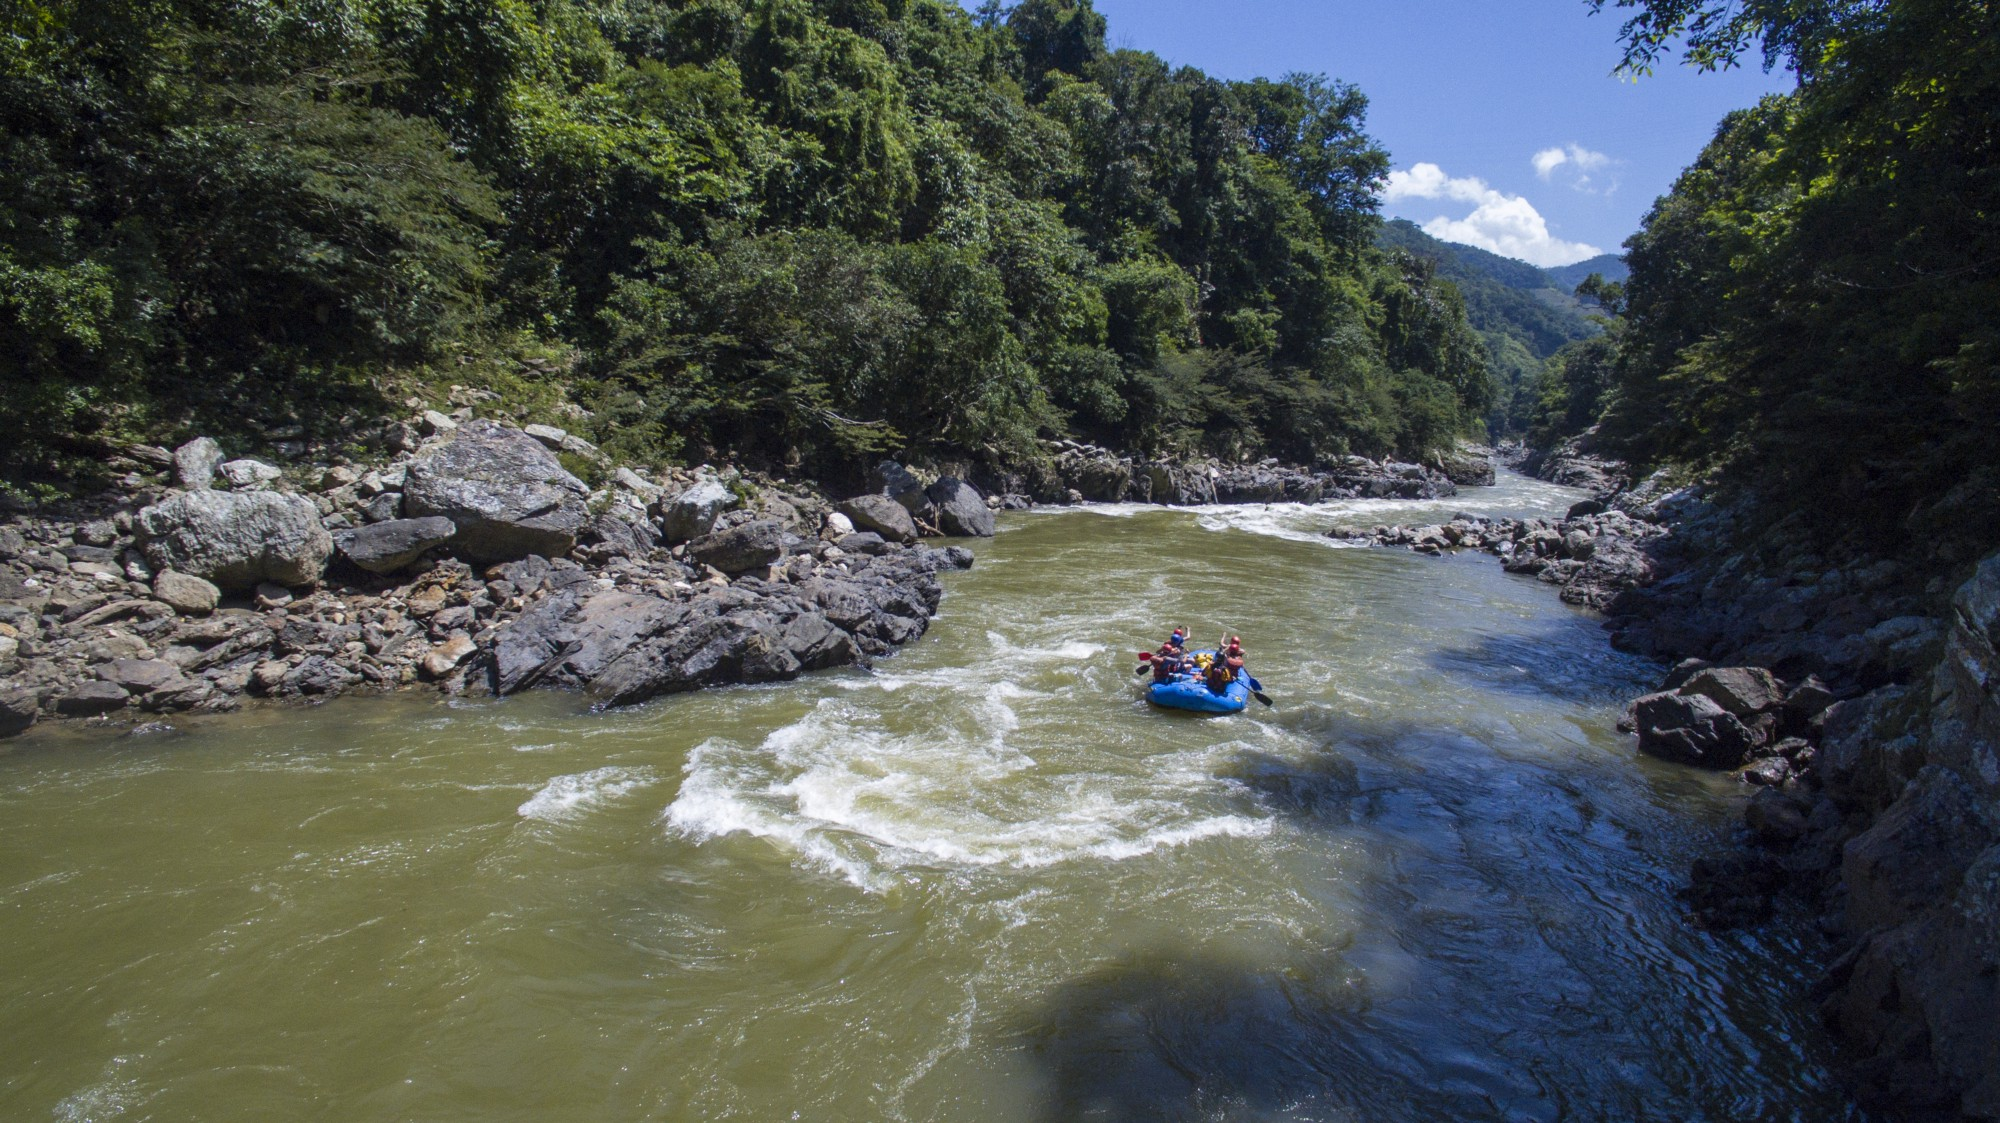 Blue raft descending the Rio Samana in Colombia